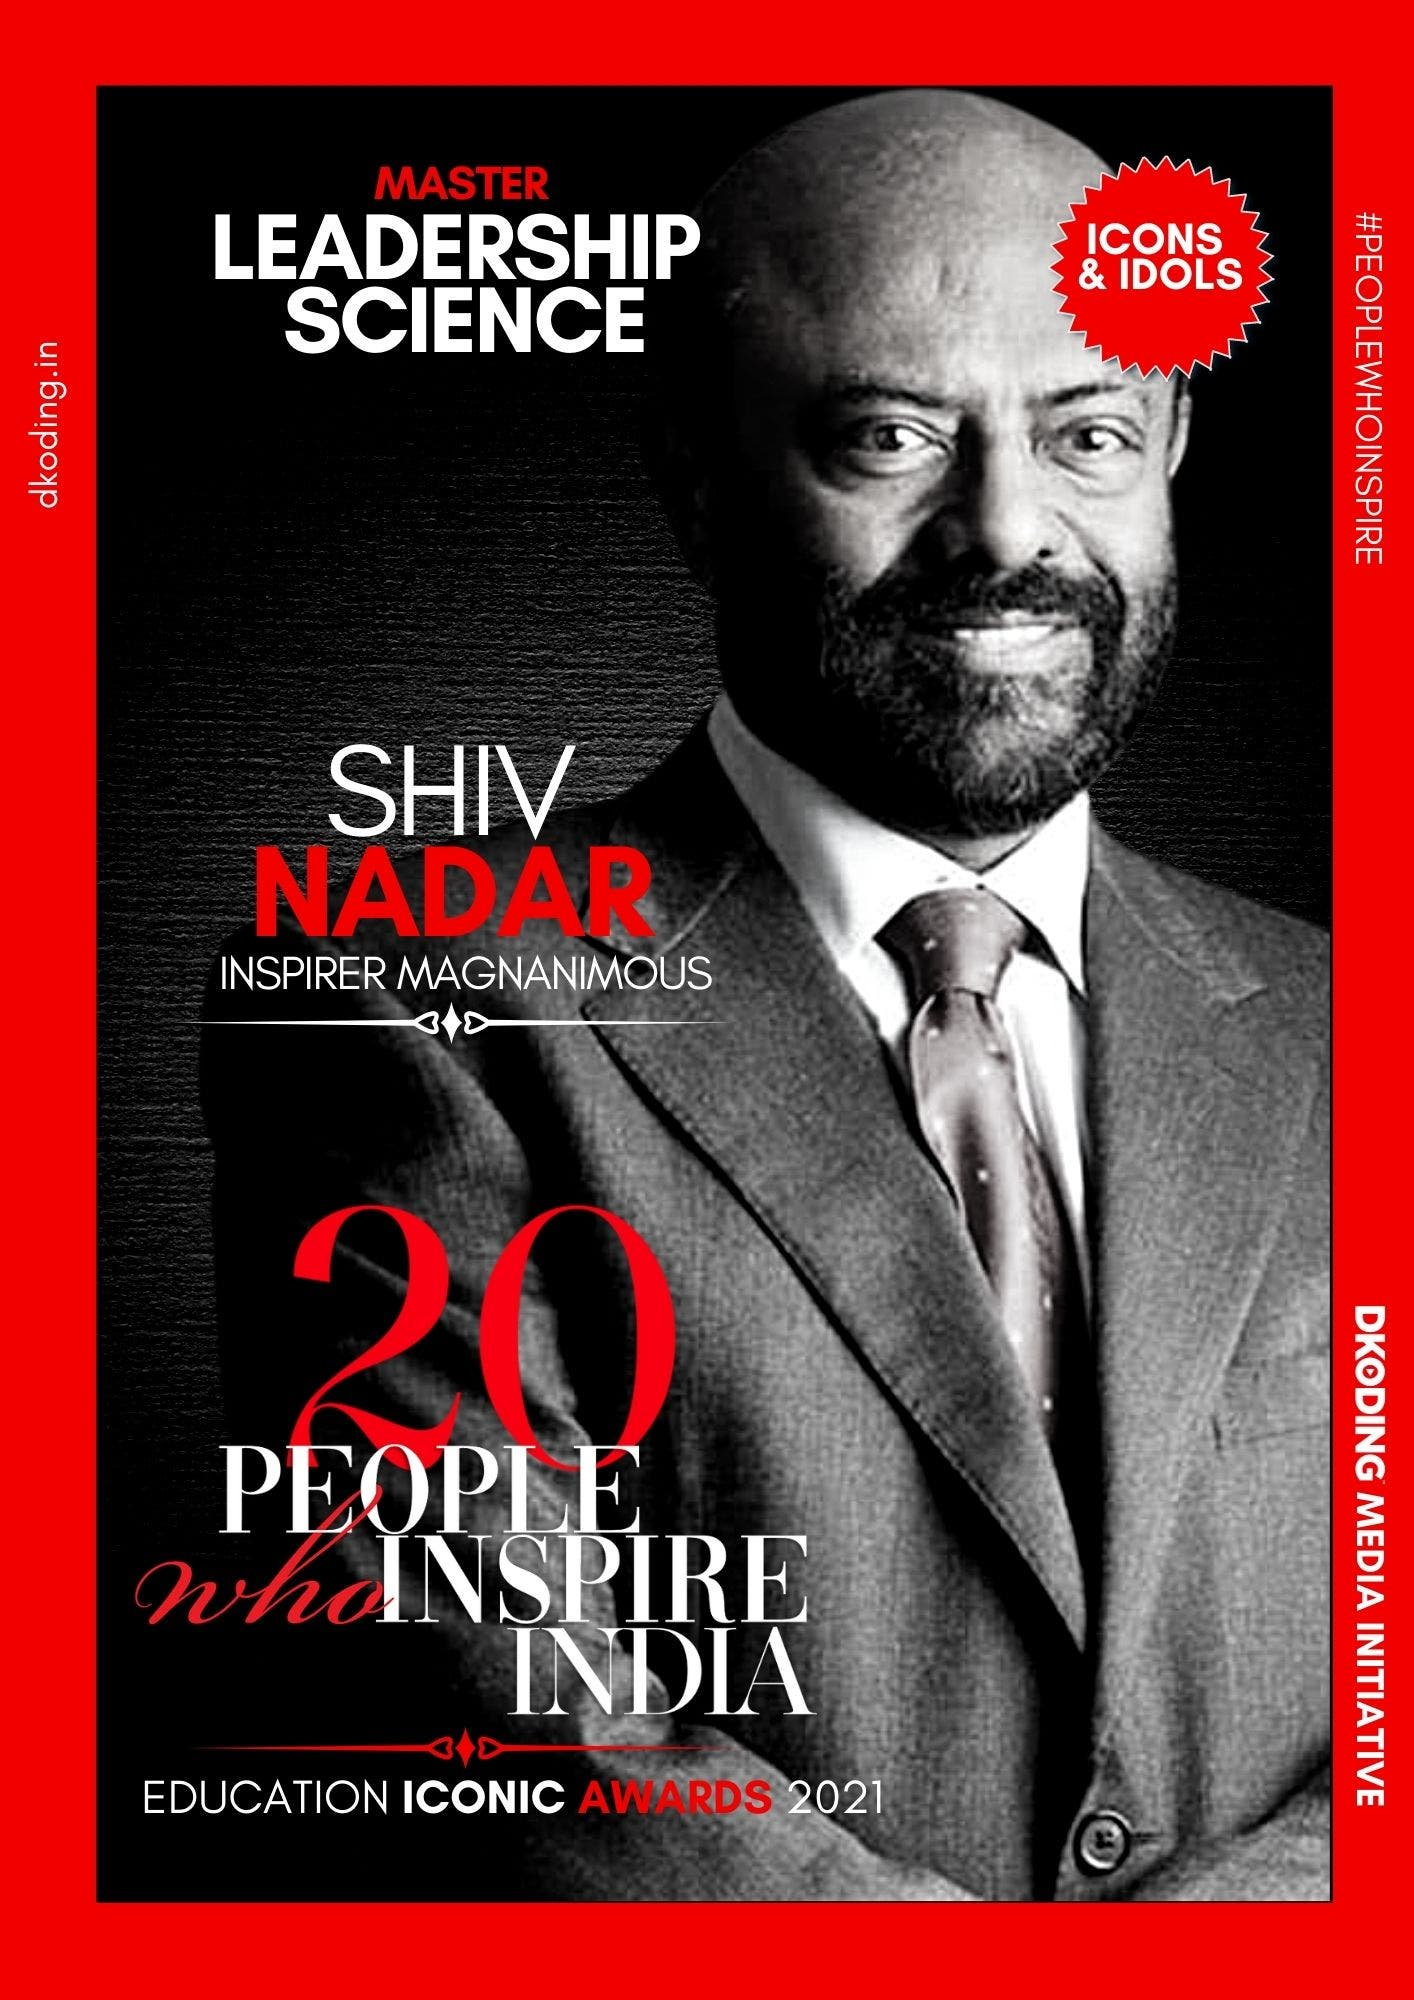 Shiv Nadar wins People Who Inspire India PWI Education Iconic Award 2021